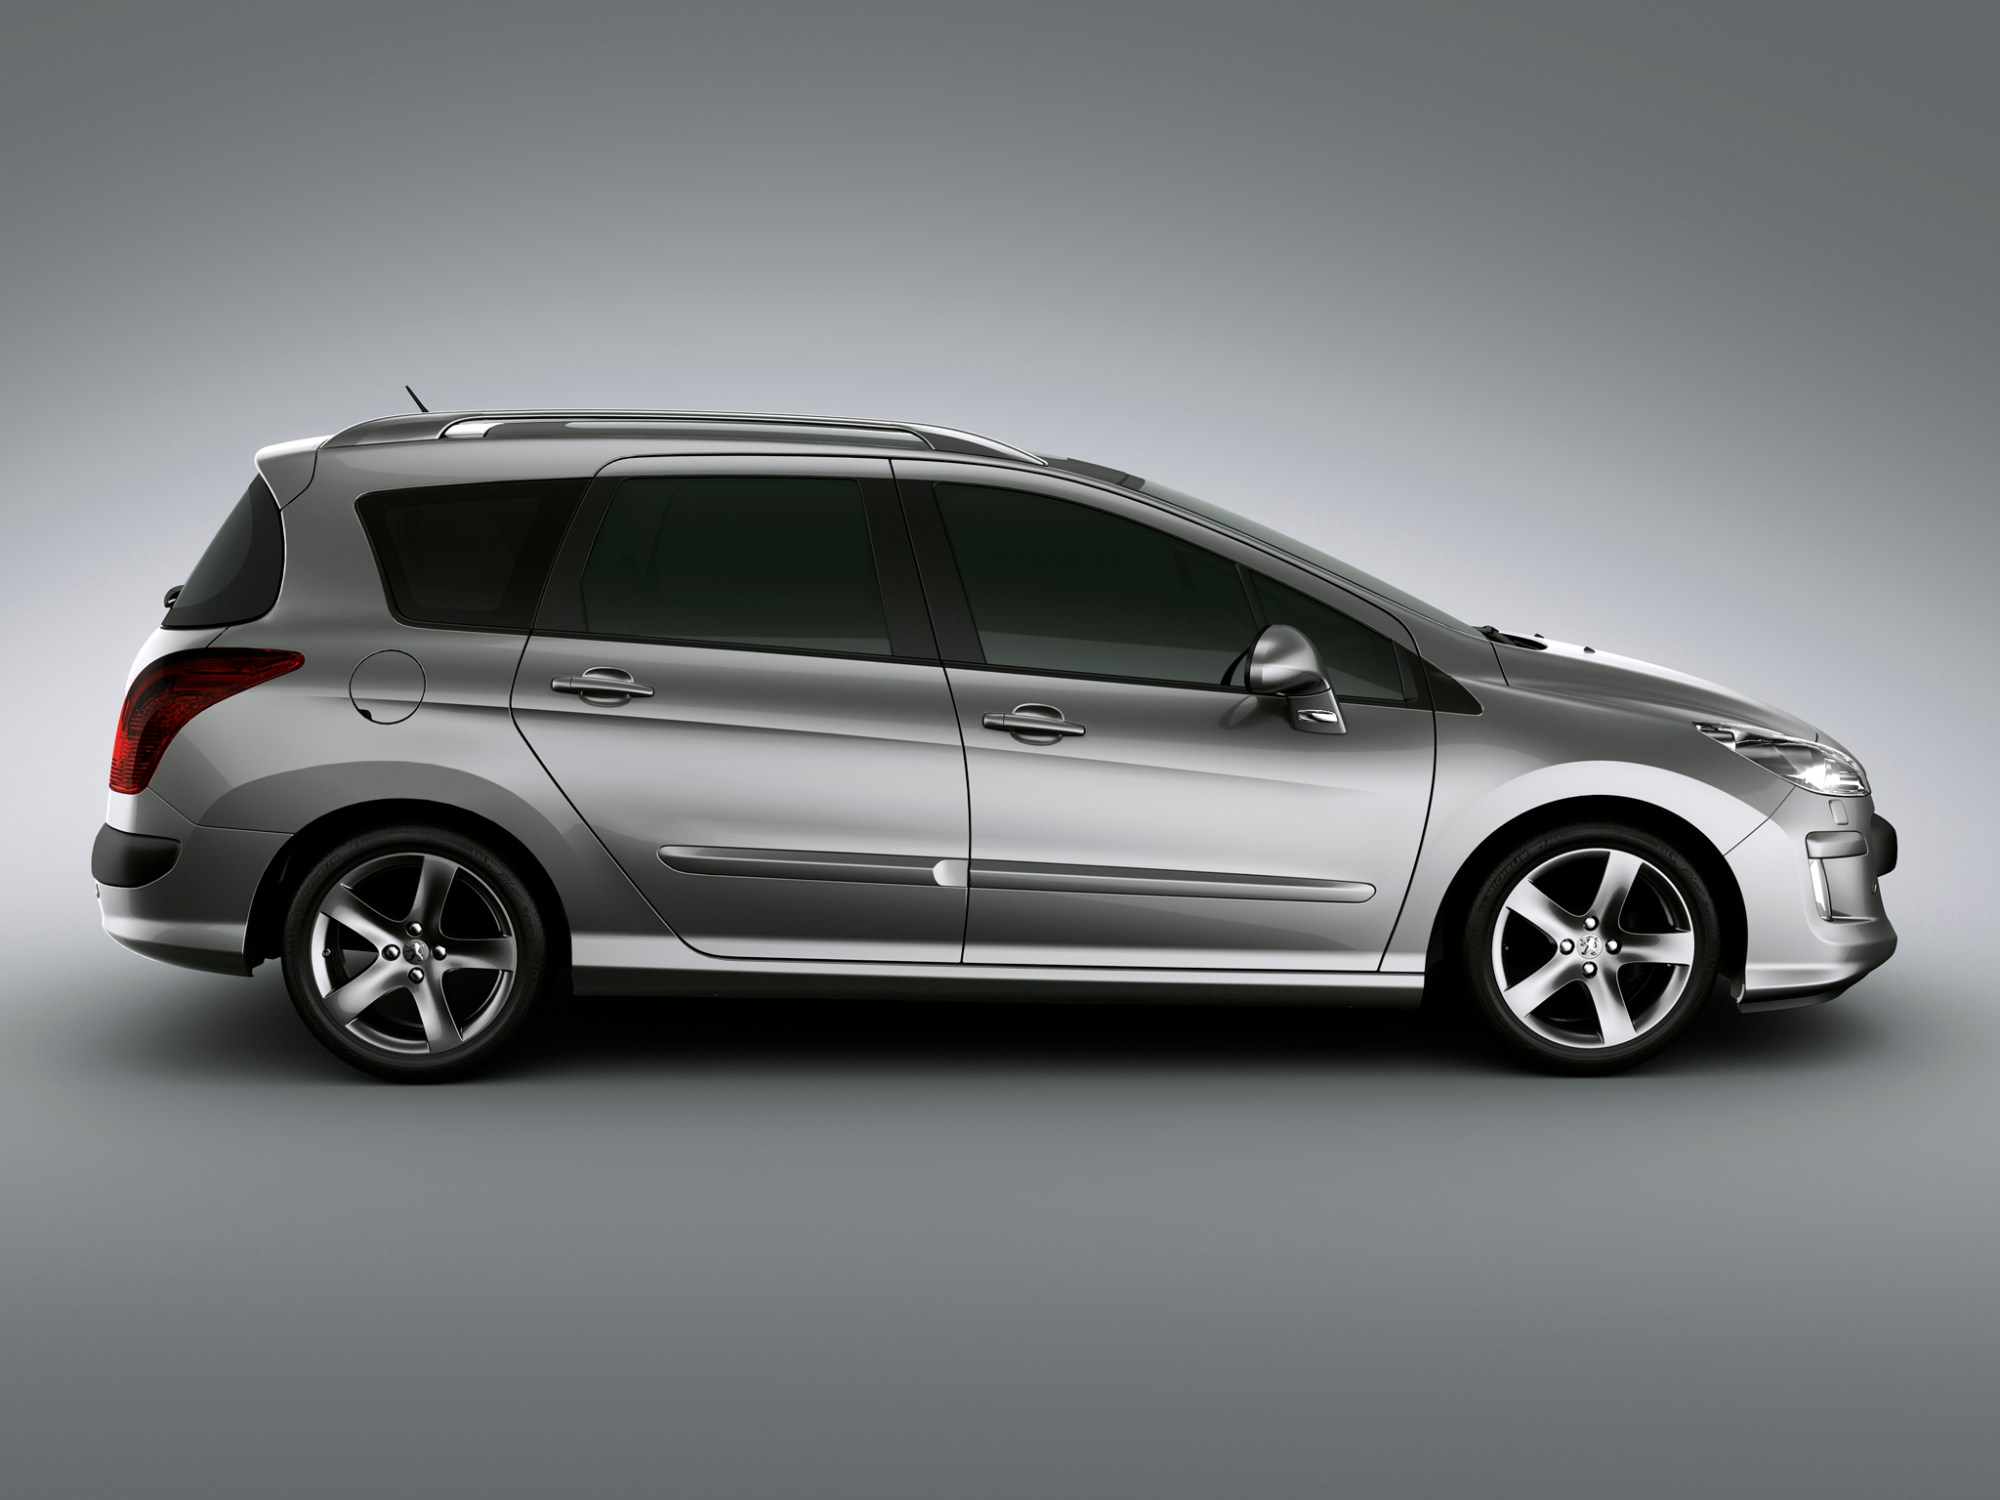 hight resolution of pic link https www carsbase com photo peugeot